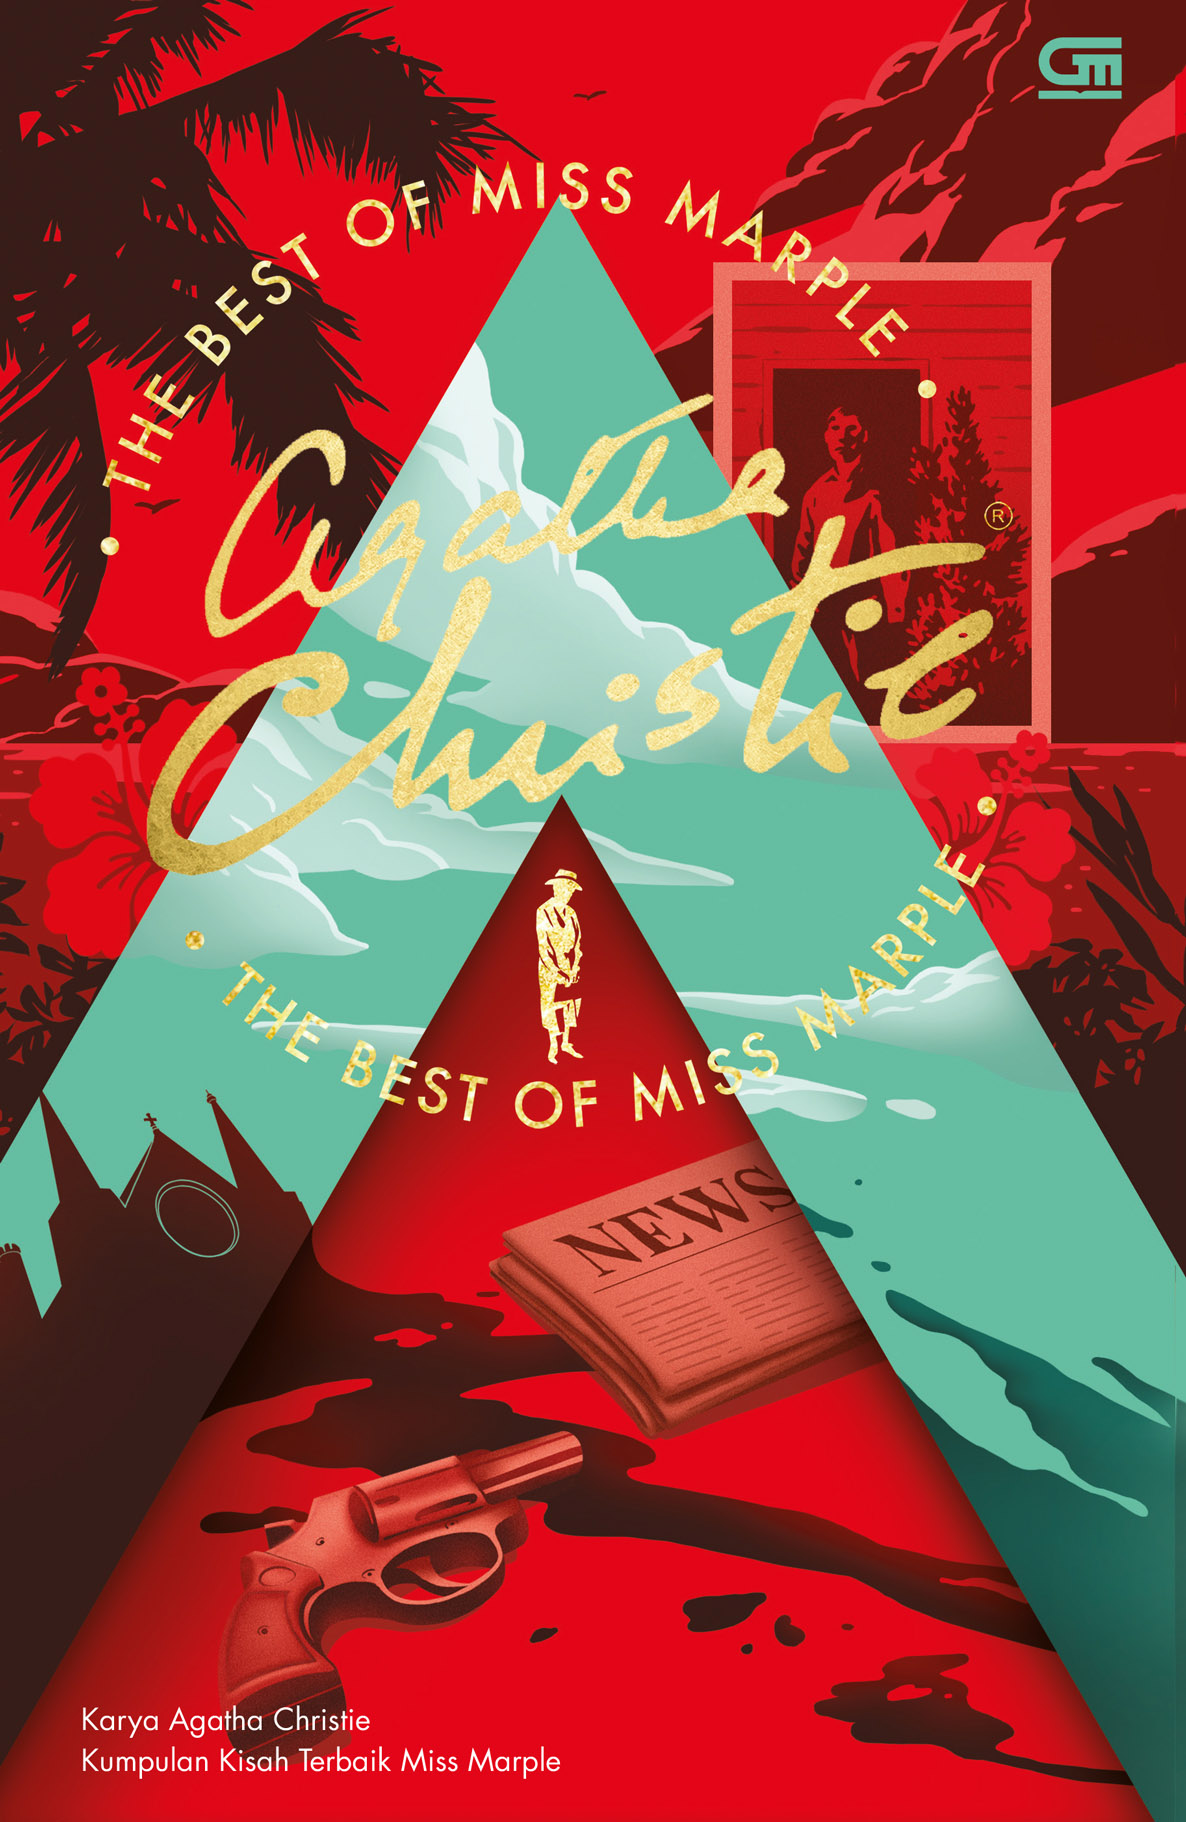 Kumpulan Kisah Terbaik Miss Marple (Agatha Christie\'s The Best of Miss Marple)